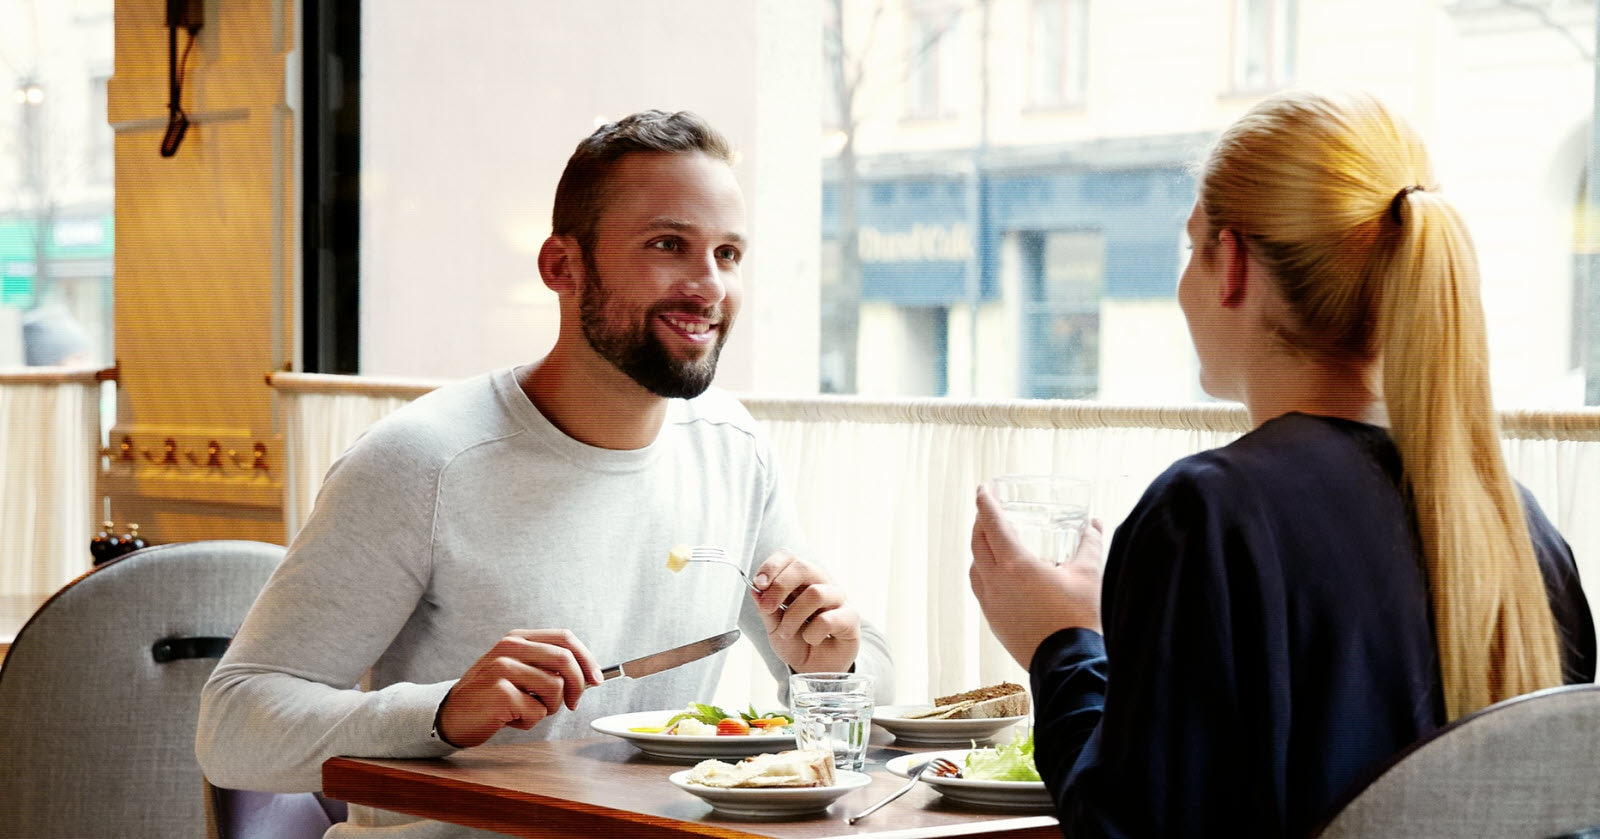 Couple having lunch in restaurant